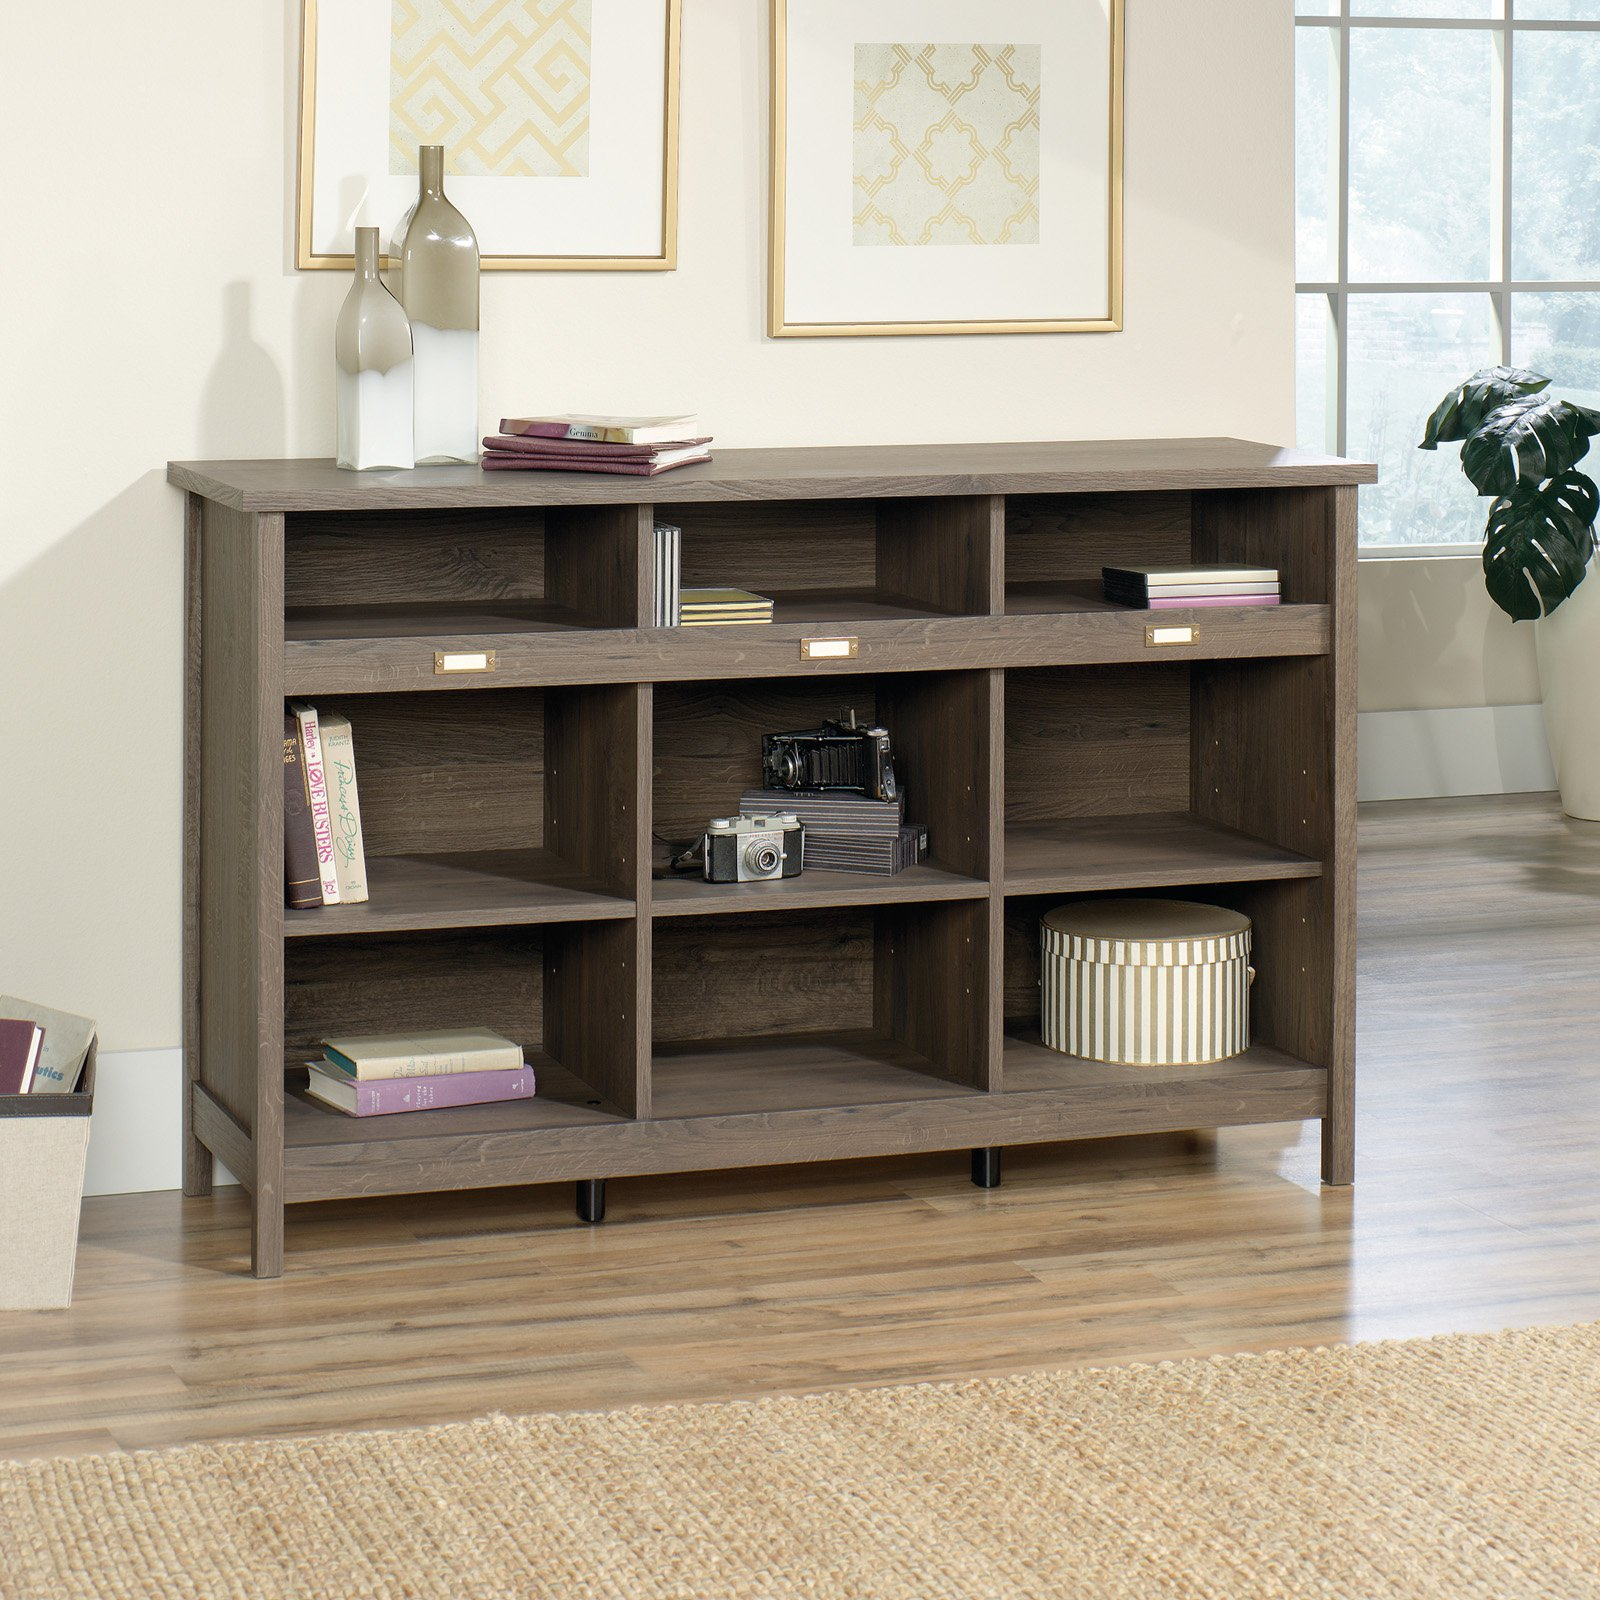 Sauder Adept Storage Credenza, Fossil Oak Finish